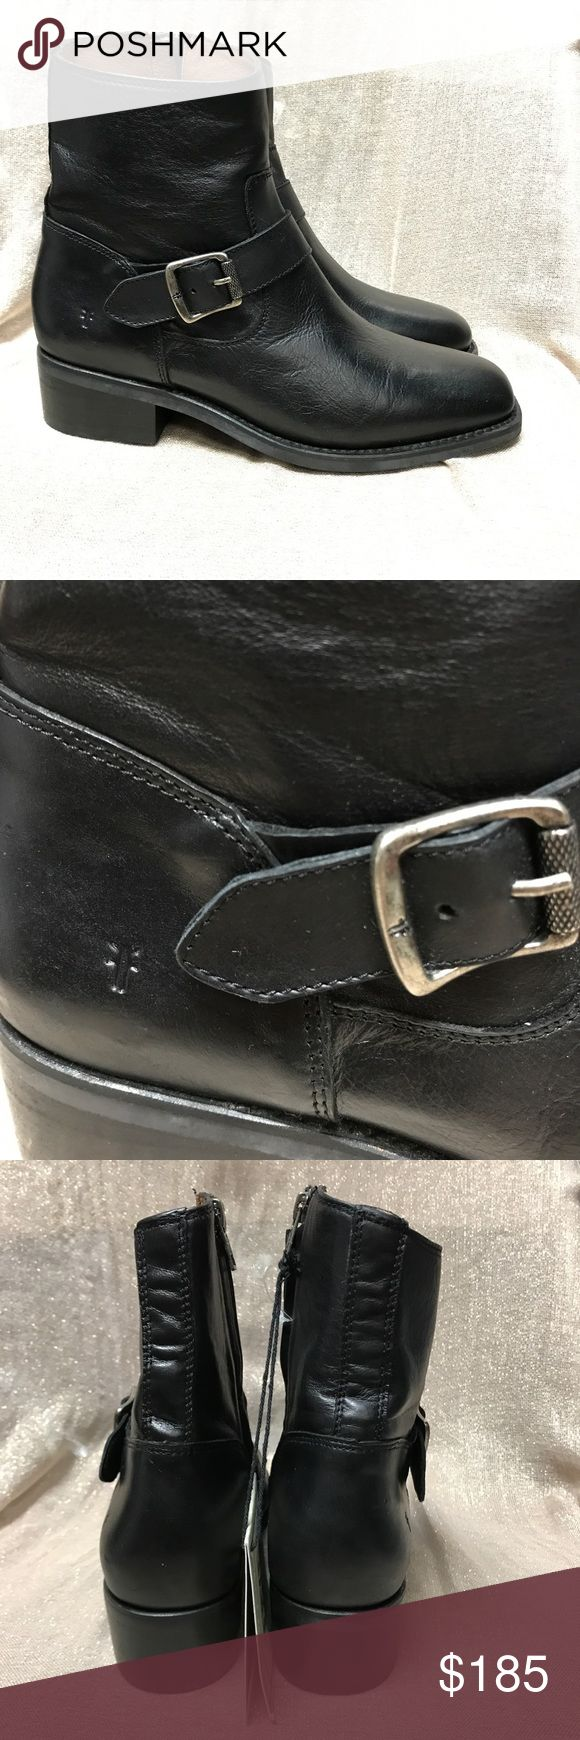 """Frye Hannah Engineer Boot Details Antiqued buckle hardware defines a soft leather boot with a signature embossed logo at the heel.  Sizing: True to size.  - Square toe - Buckle strap detail - Side zip closure - Lightly padded insole - Block heel - Approx. 6"""" shaft height, 10.5"""" opening circumference - Approx. 1.5"""" heel - Imported.  No box included Frye Shoes"""